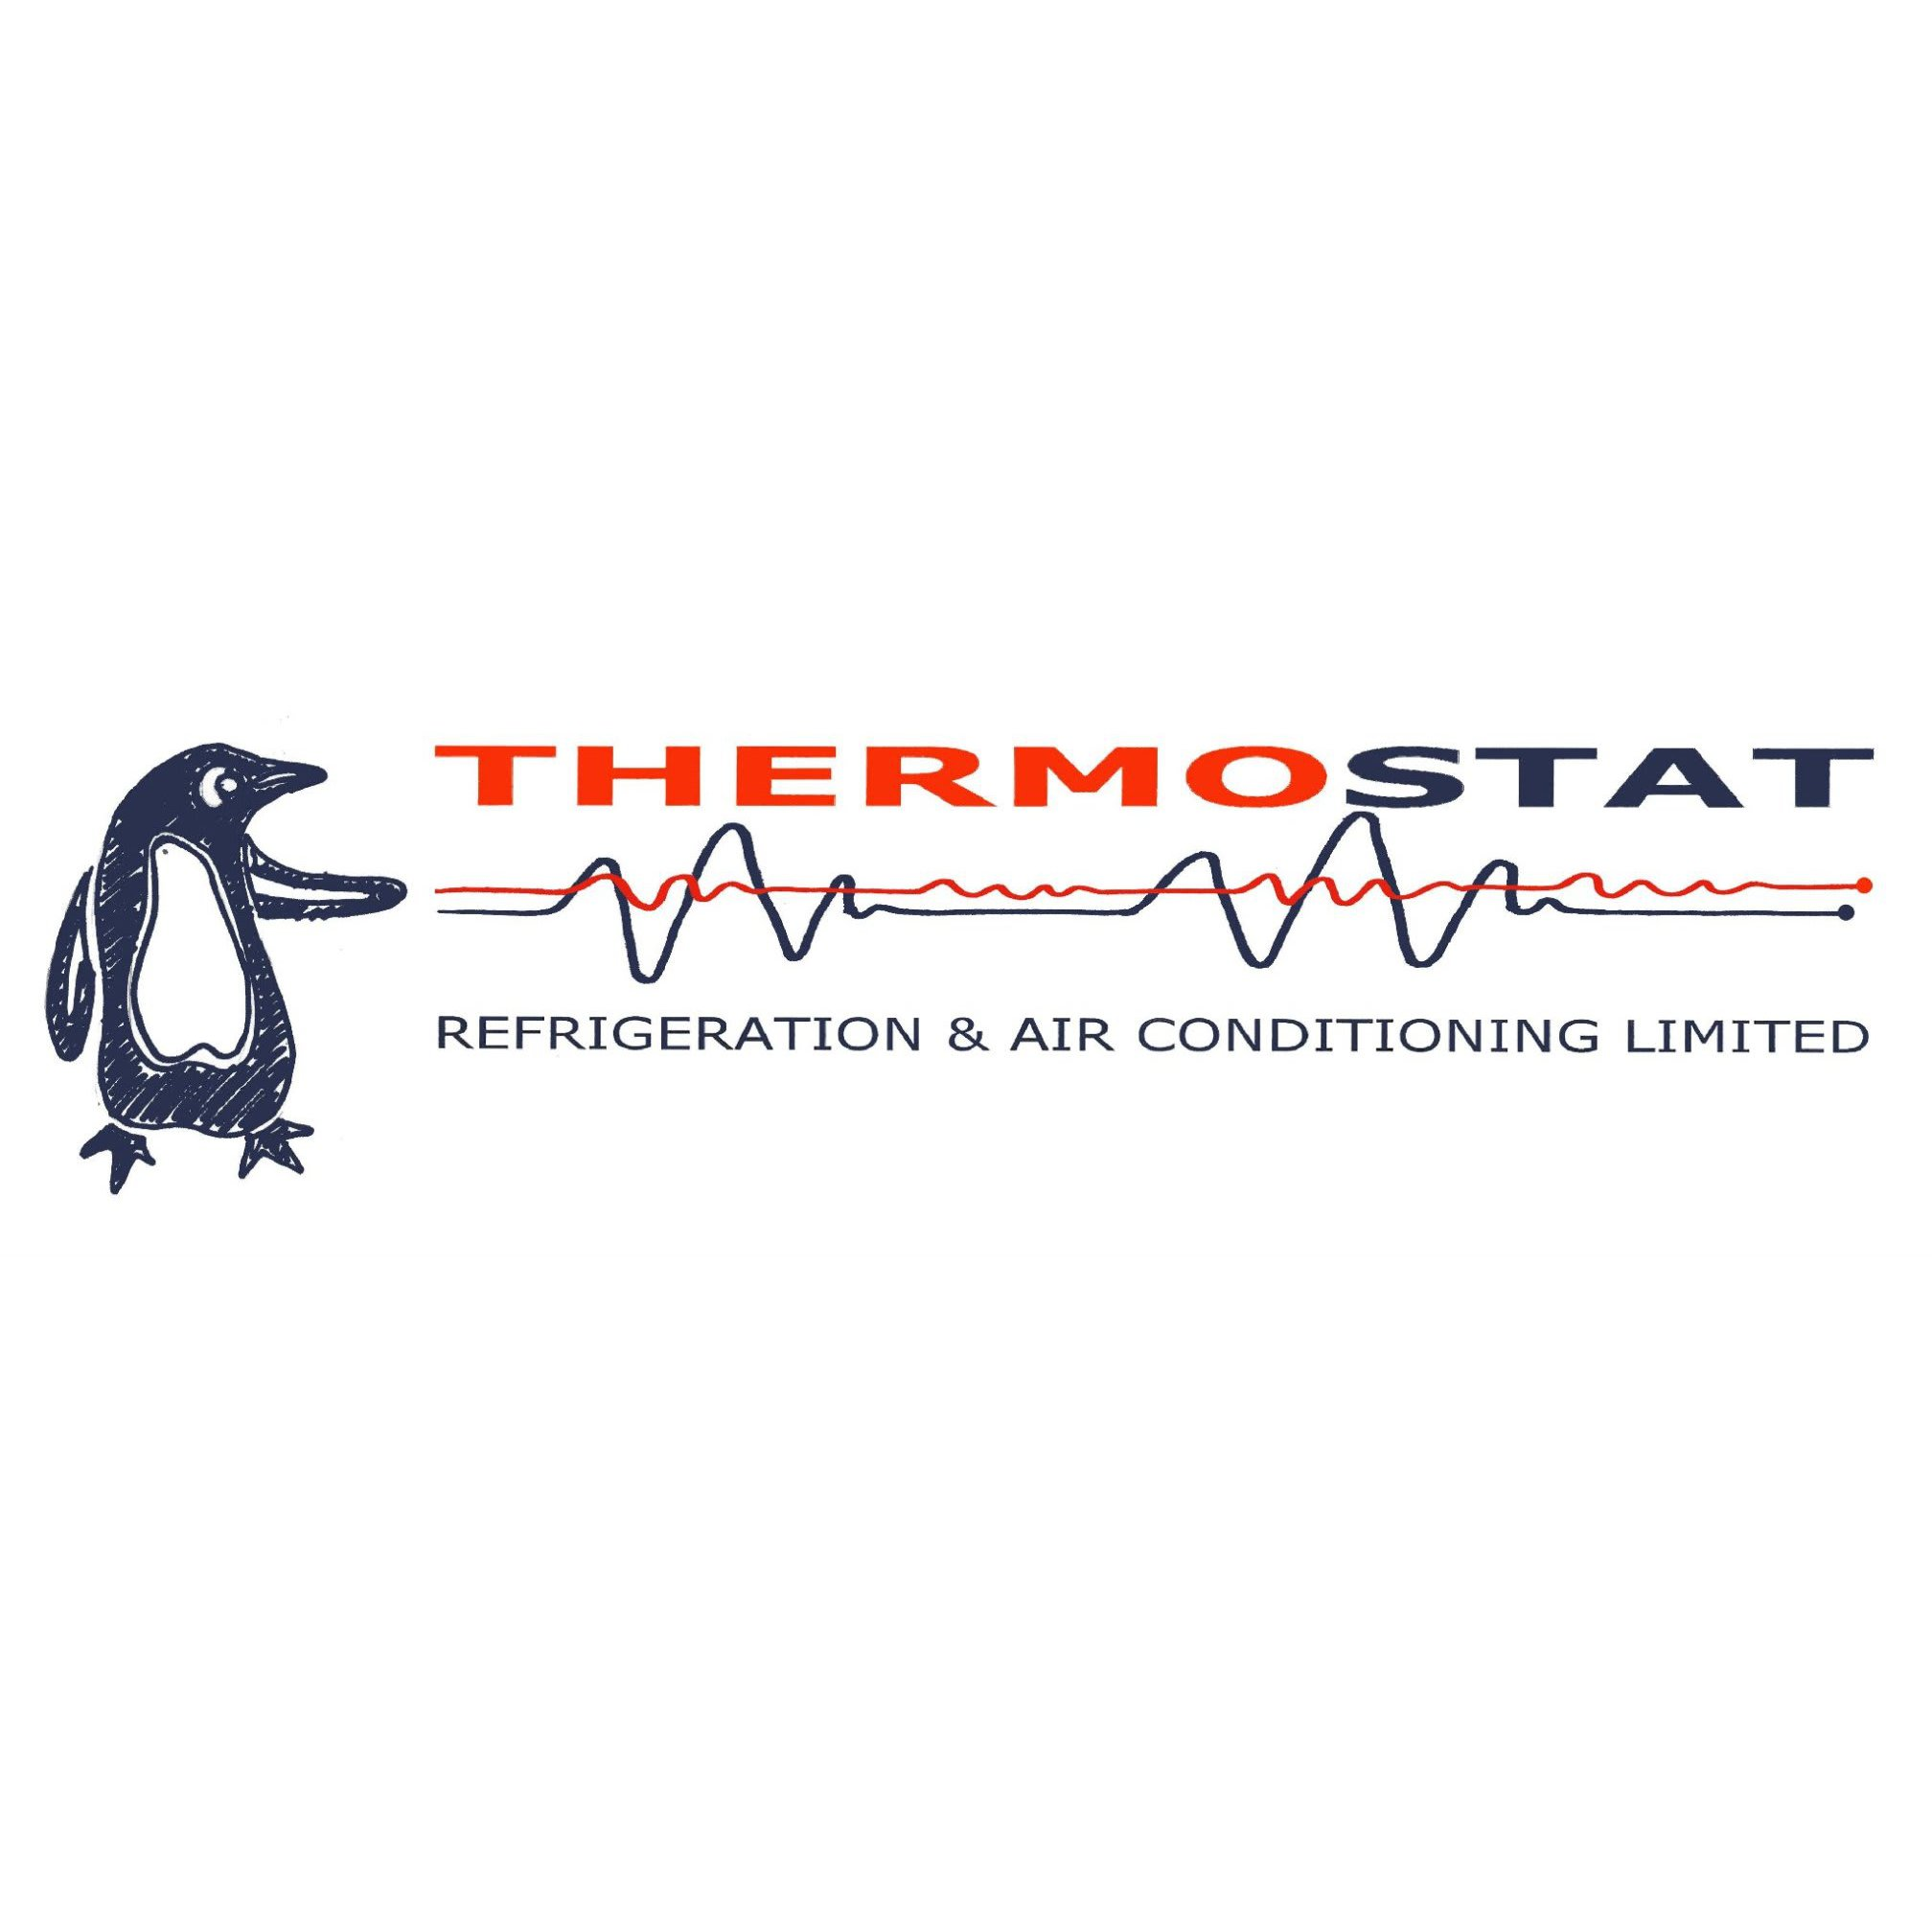 Thermostat Refrigeration & Air Conditioning Ltd - Henley-On-Thames, Oxfordshire RG9 2EG - 07402 968008 | ShowMeLocal.com